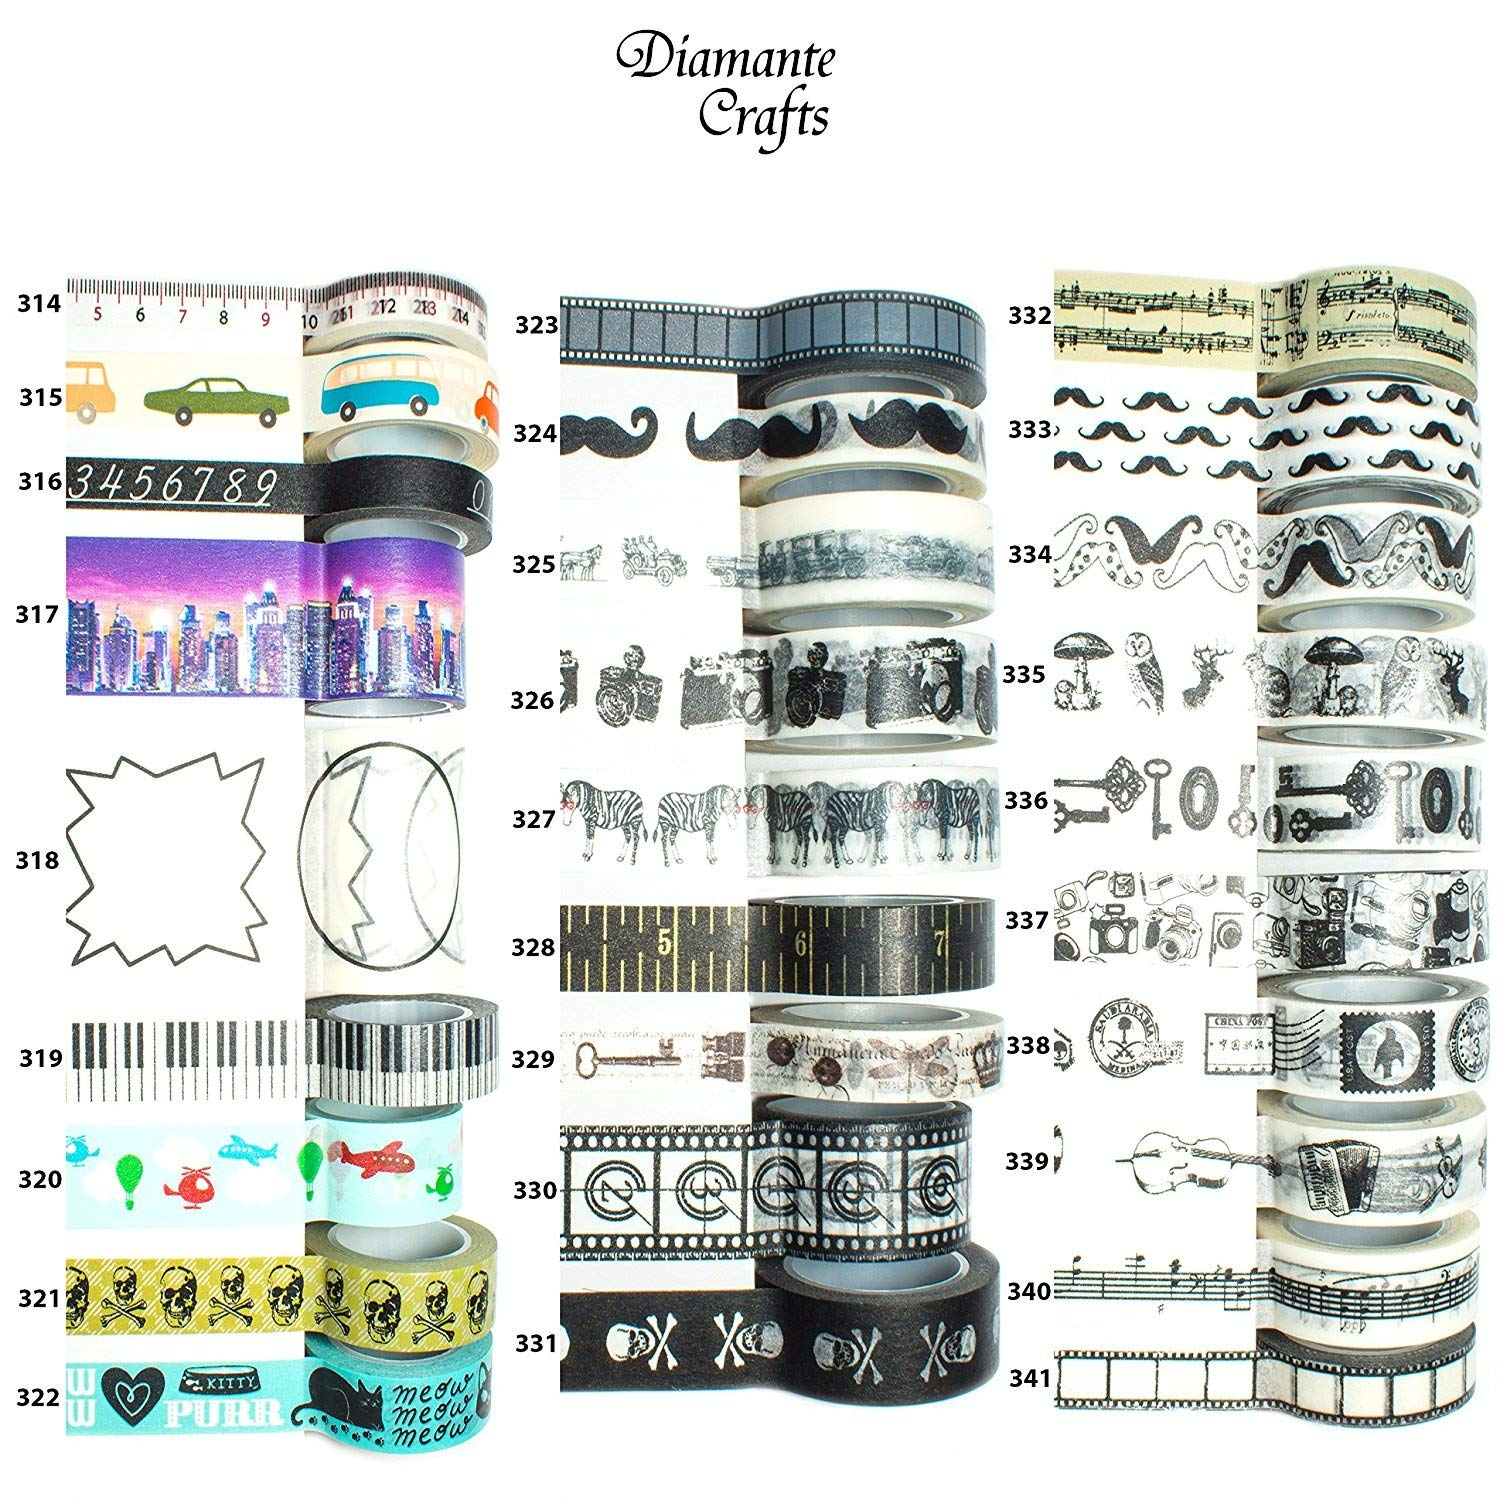 1 Roll Washi Tape Decorative Masking Adhesive Paper Craft Gift Trim - by Diamante Crafts - Choose Design - Novelty 1 Collection (318 - Tags Labels (50mm x 5m))